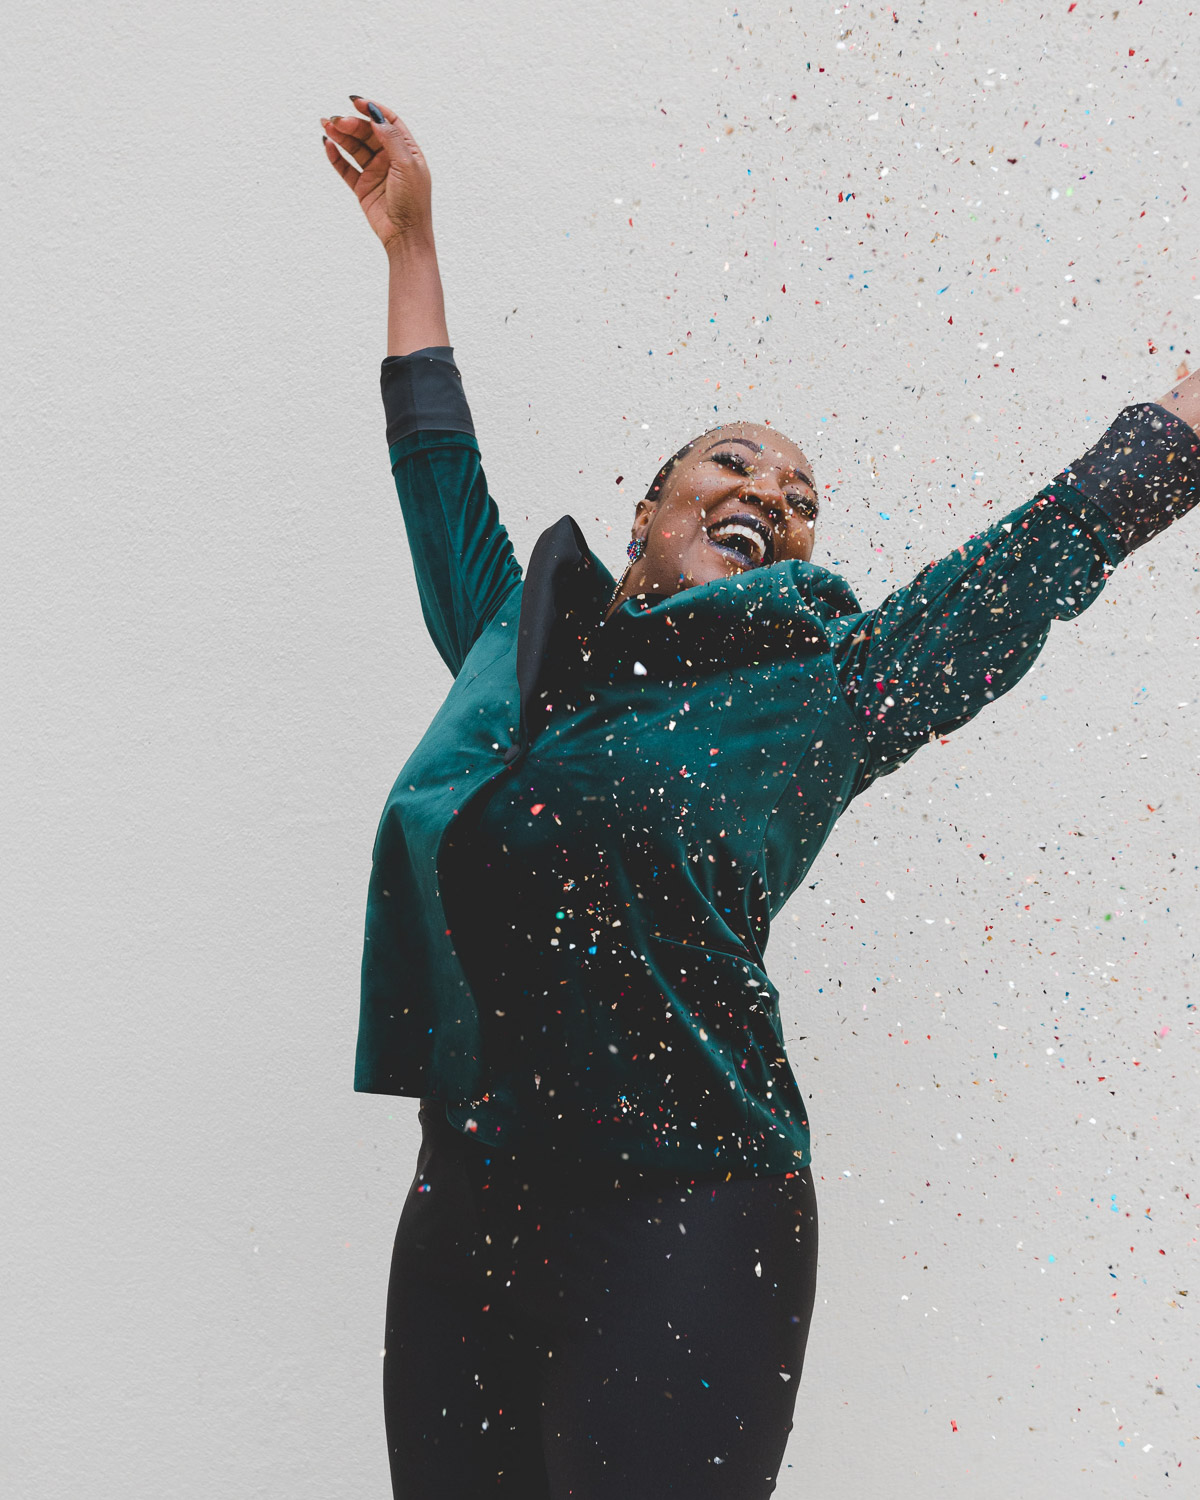 Woman looking happy, jumping up with her arms up in the air and confetti raining down